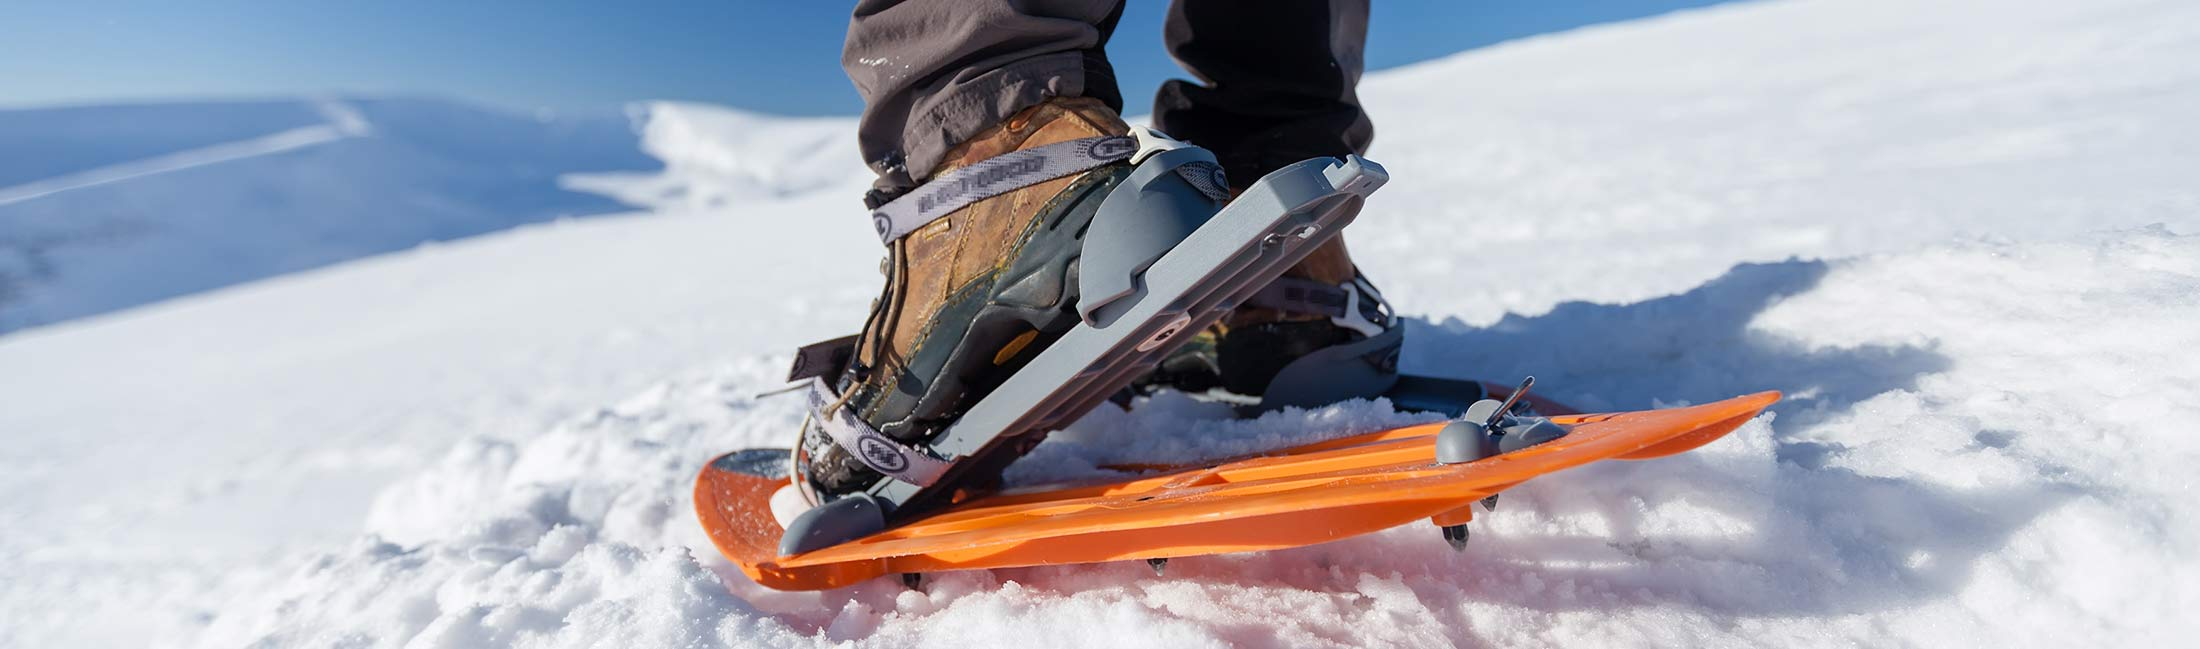 Take A Trek Through The Hills In Snowshoes